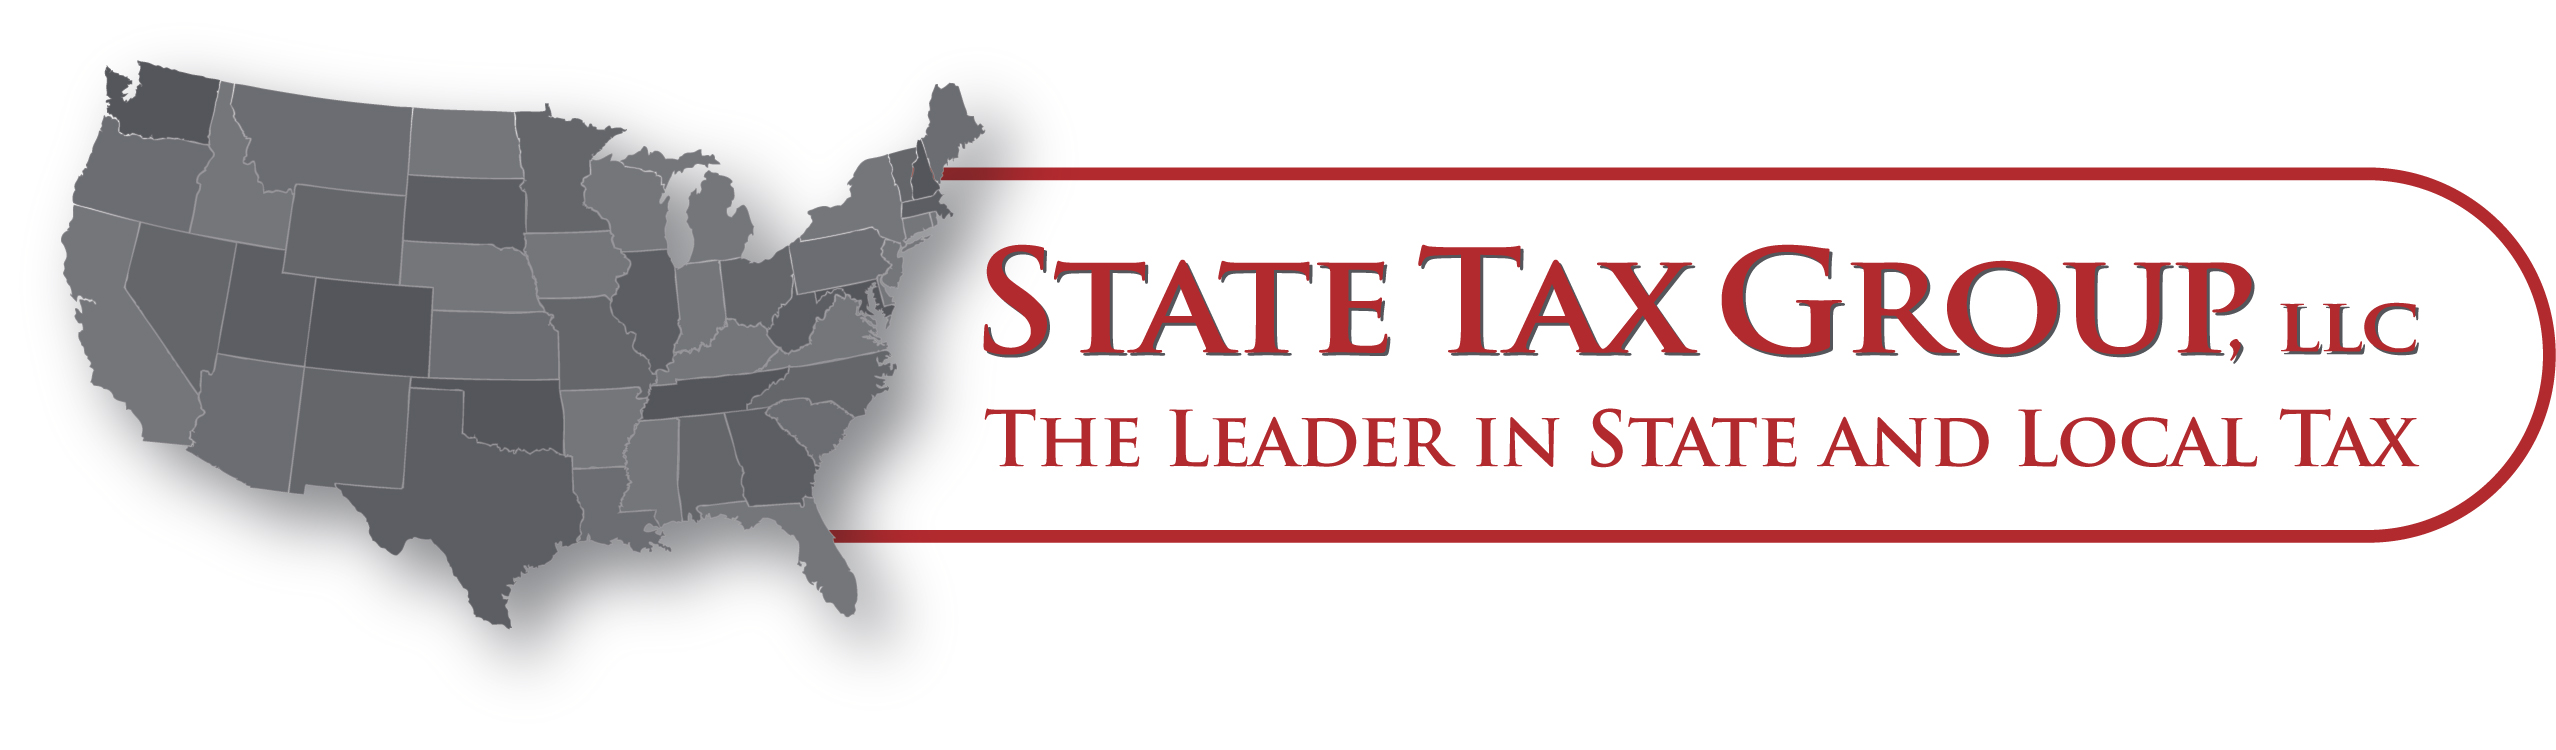 The Leader in State and Local Tax